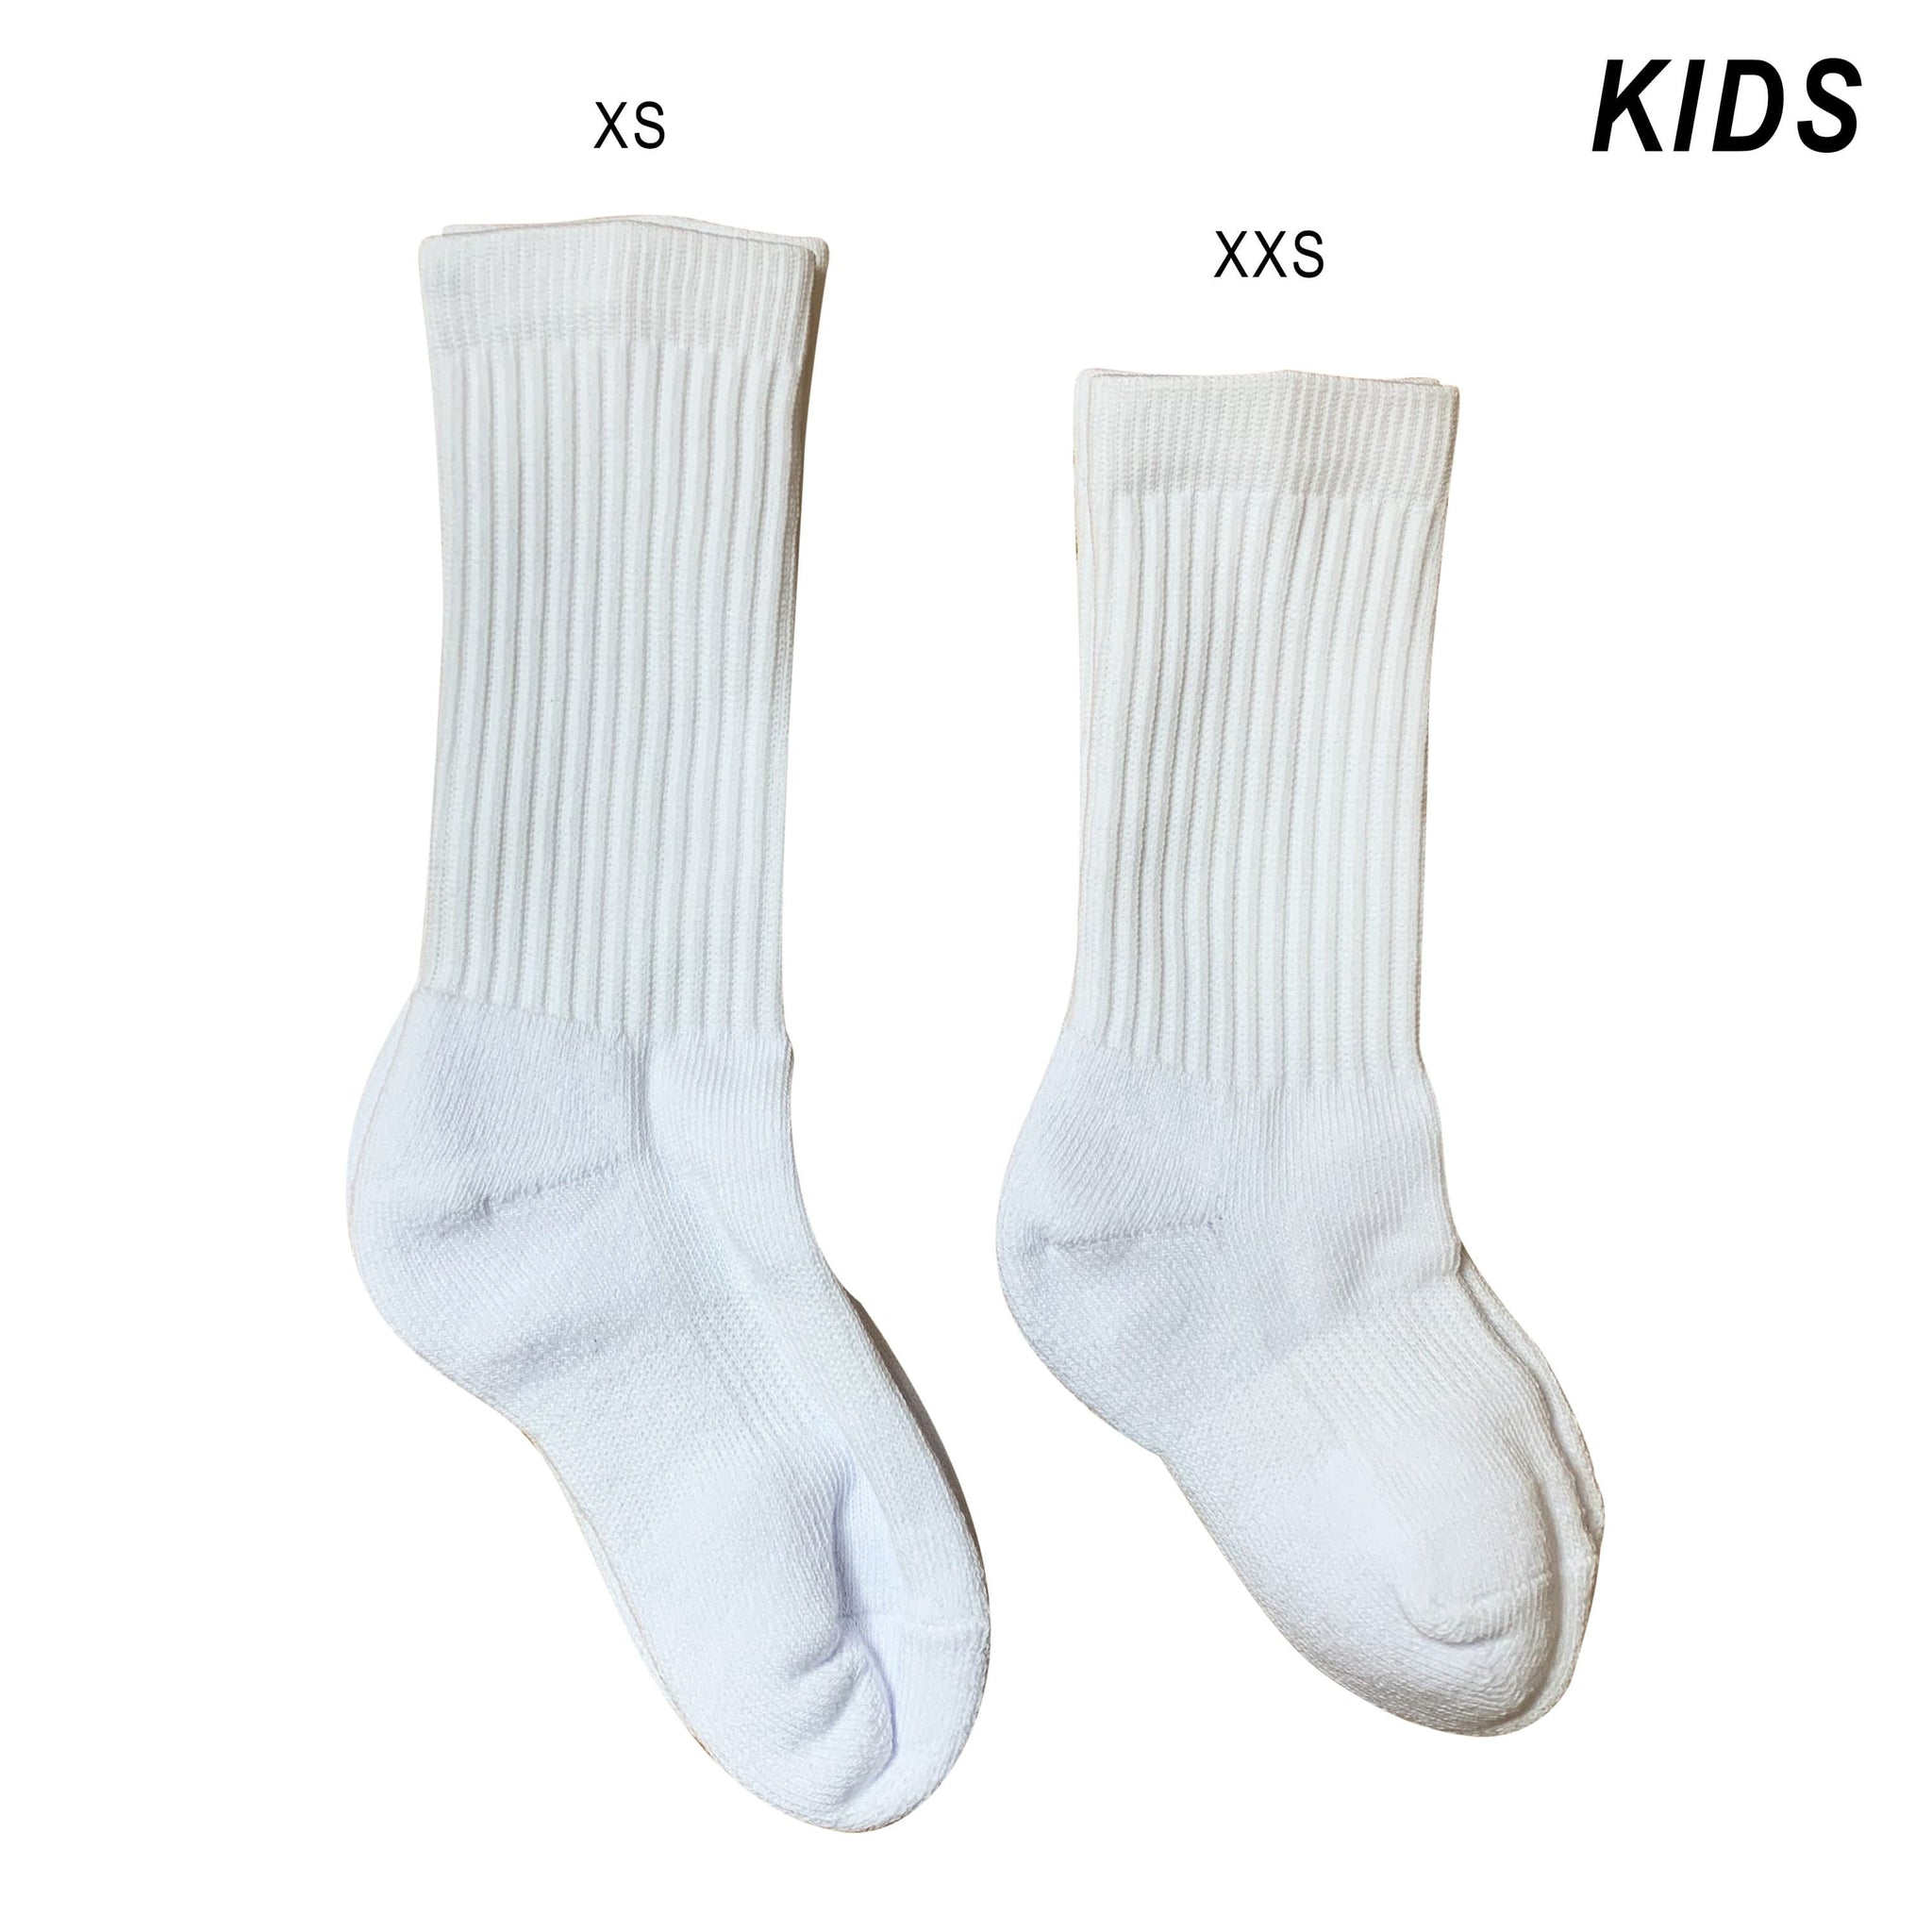 Blank Kids Socks